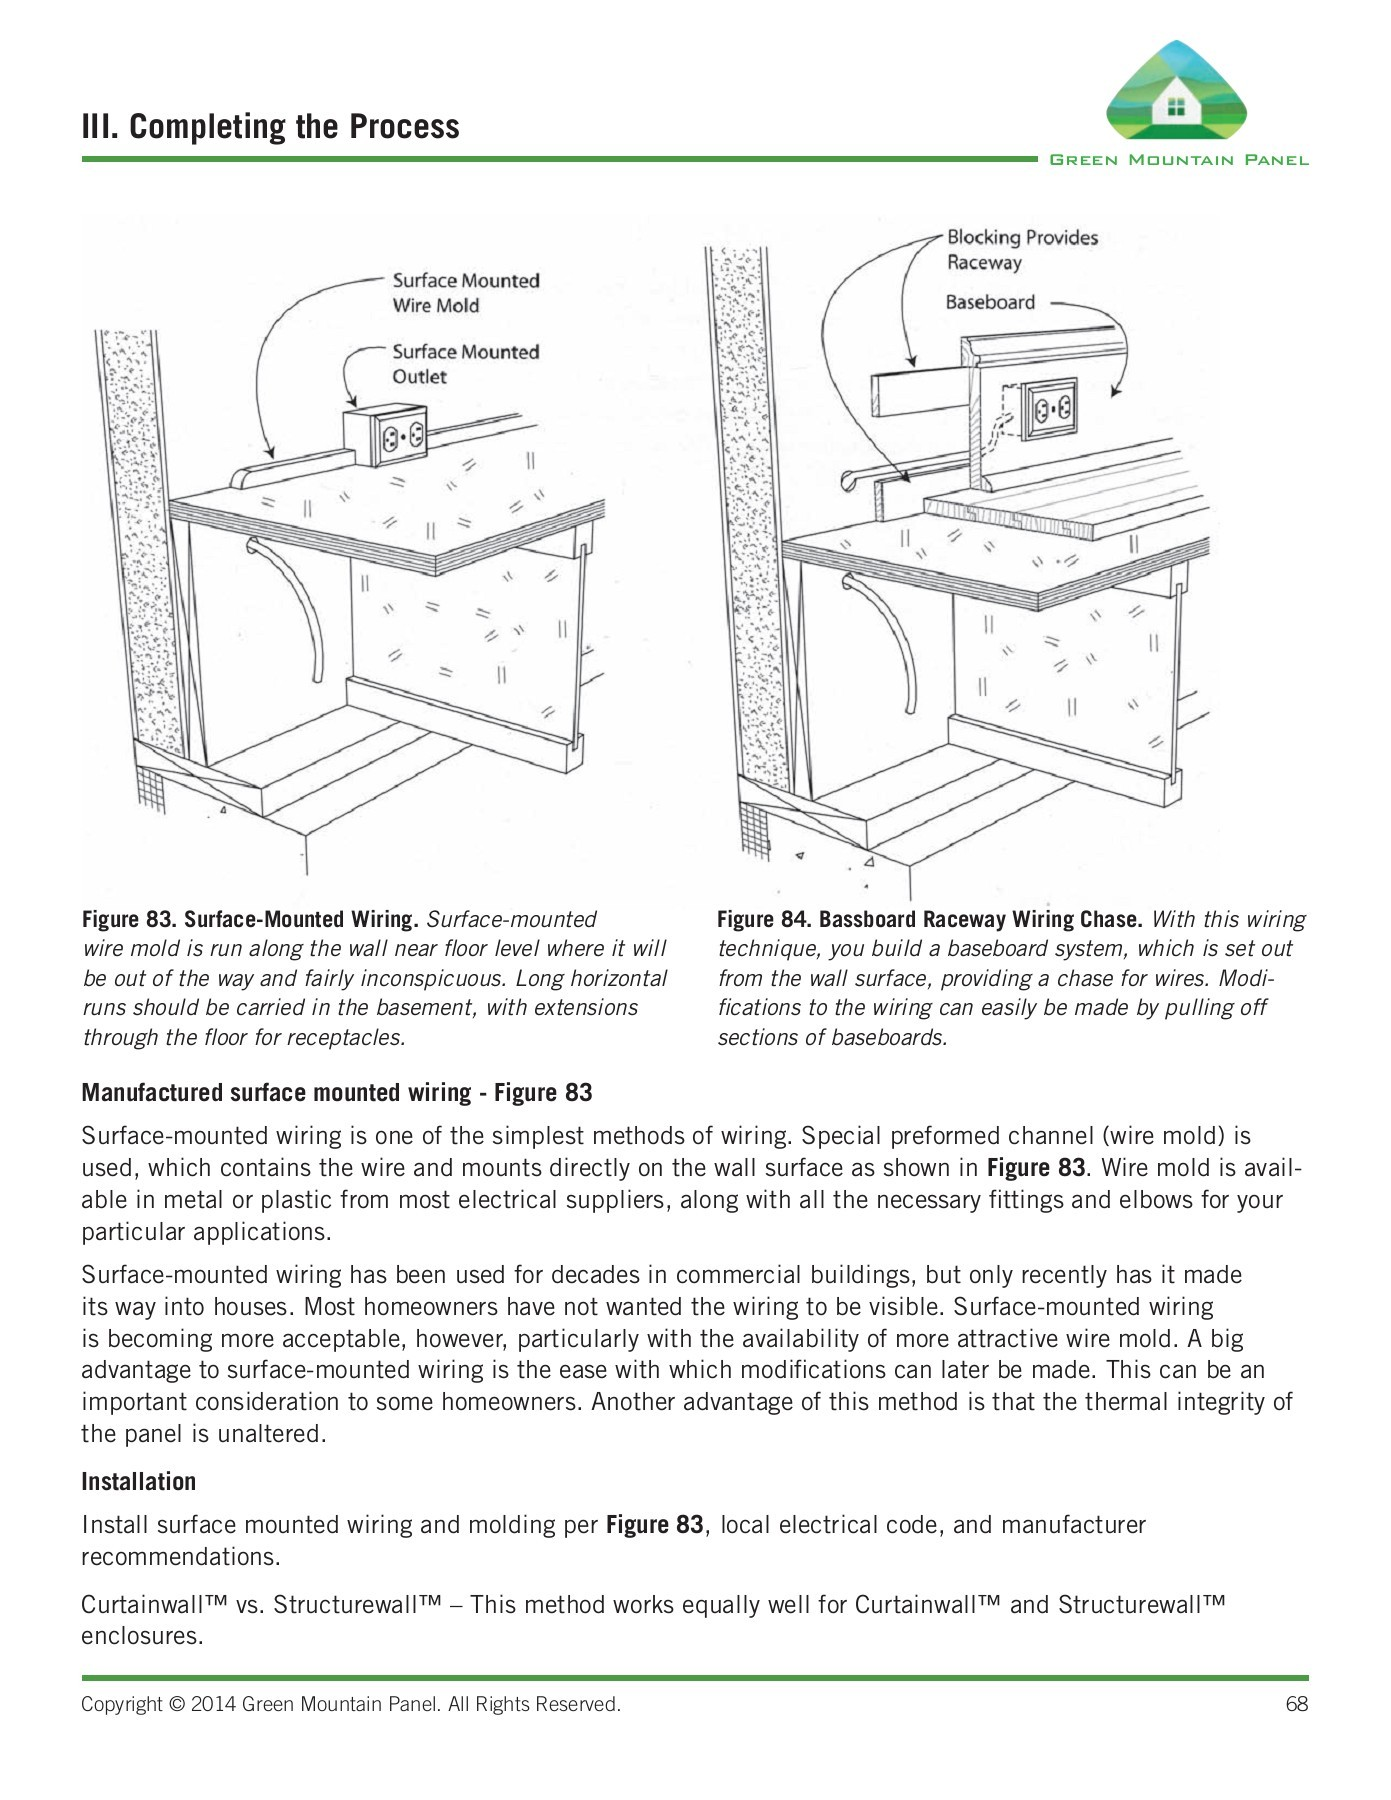 hight resolution of iii completing the process green mountain panel pages 1 6 text version fliphtml5